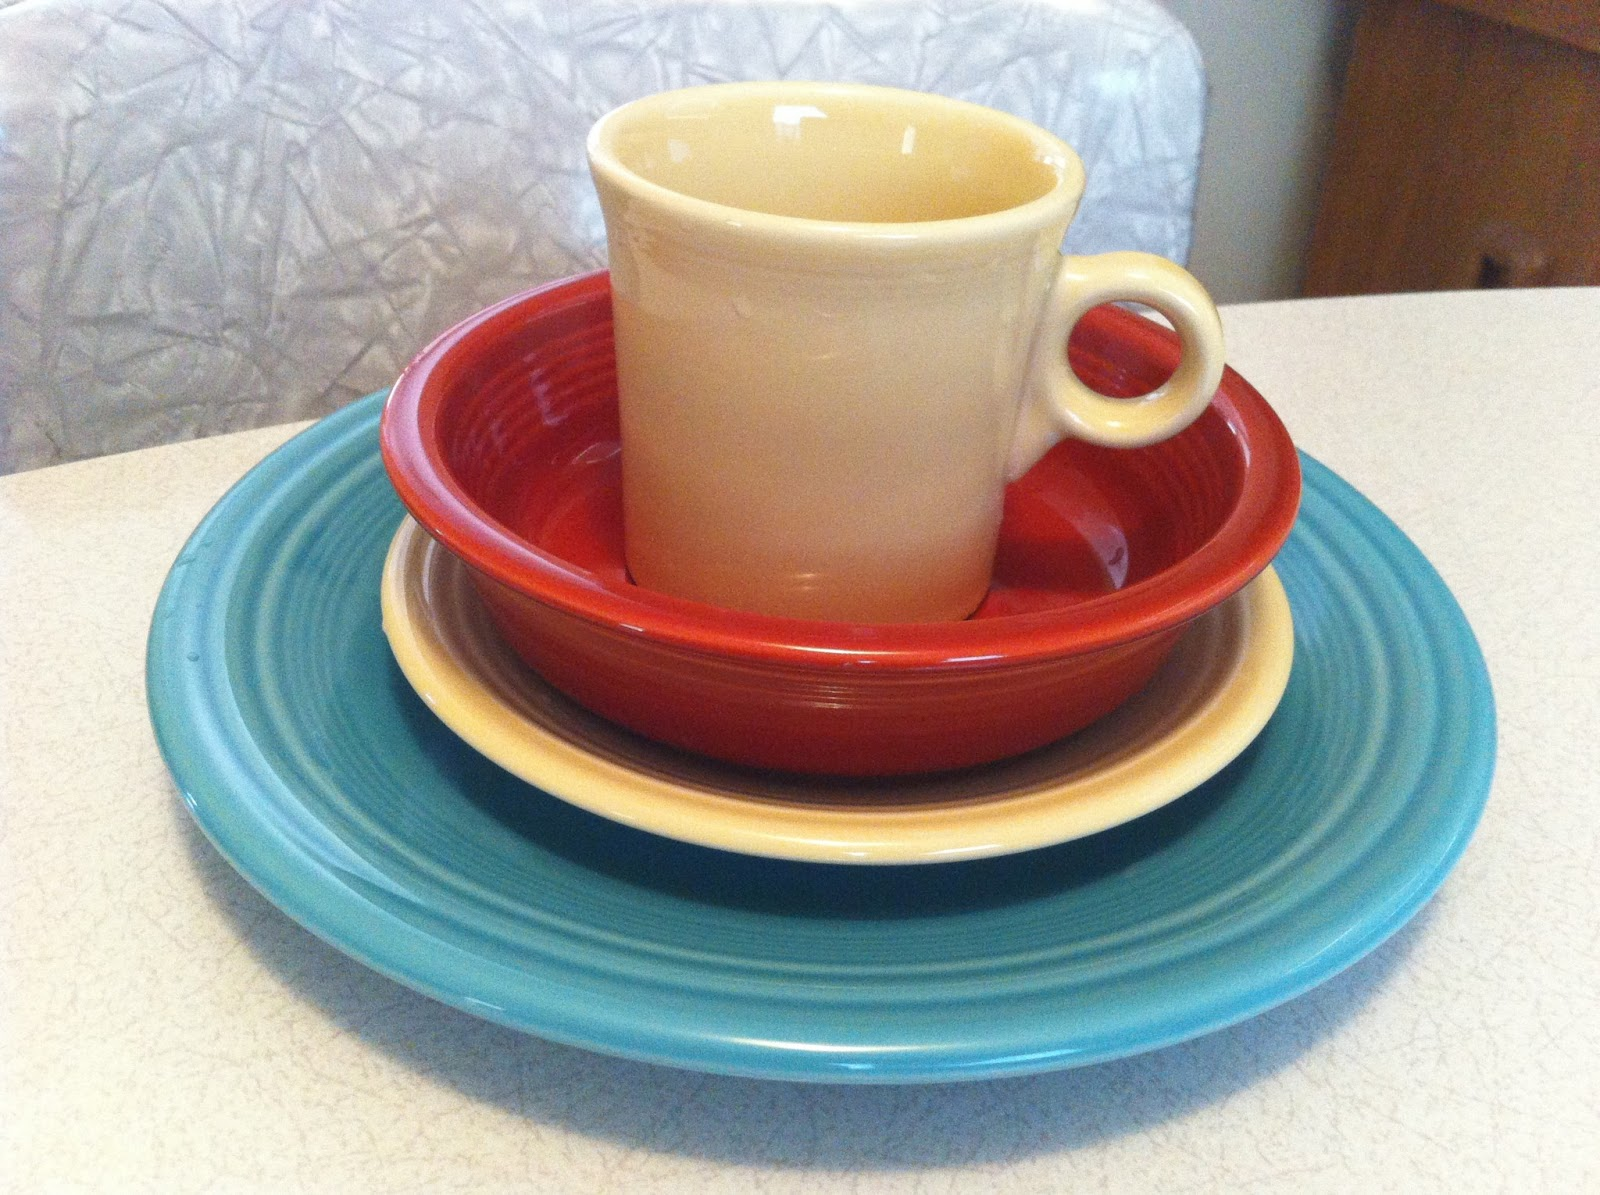 We love the history behind these dishes and thought it would be best to start from scratch and purchase brand new sets of colors we wanted. & living in the past: Fiesta ware - the winner of our everyday dishes